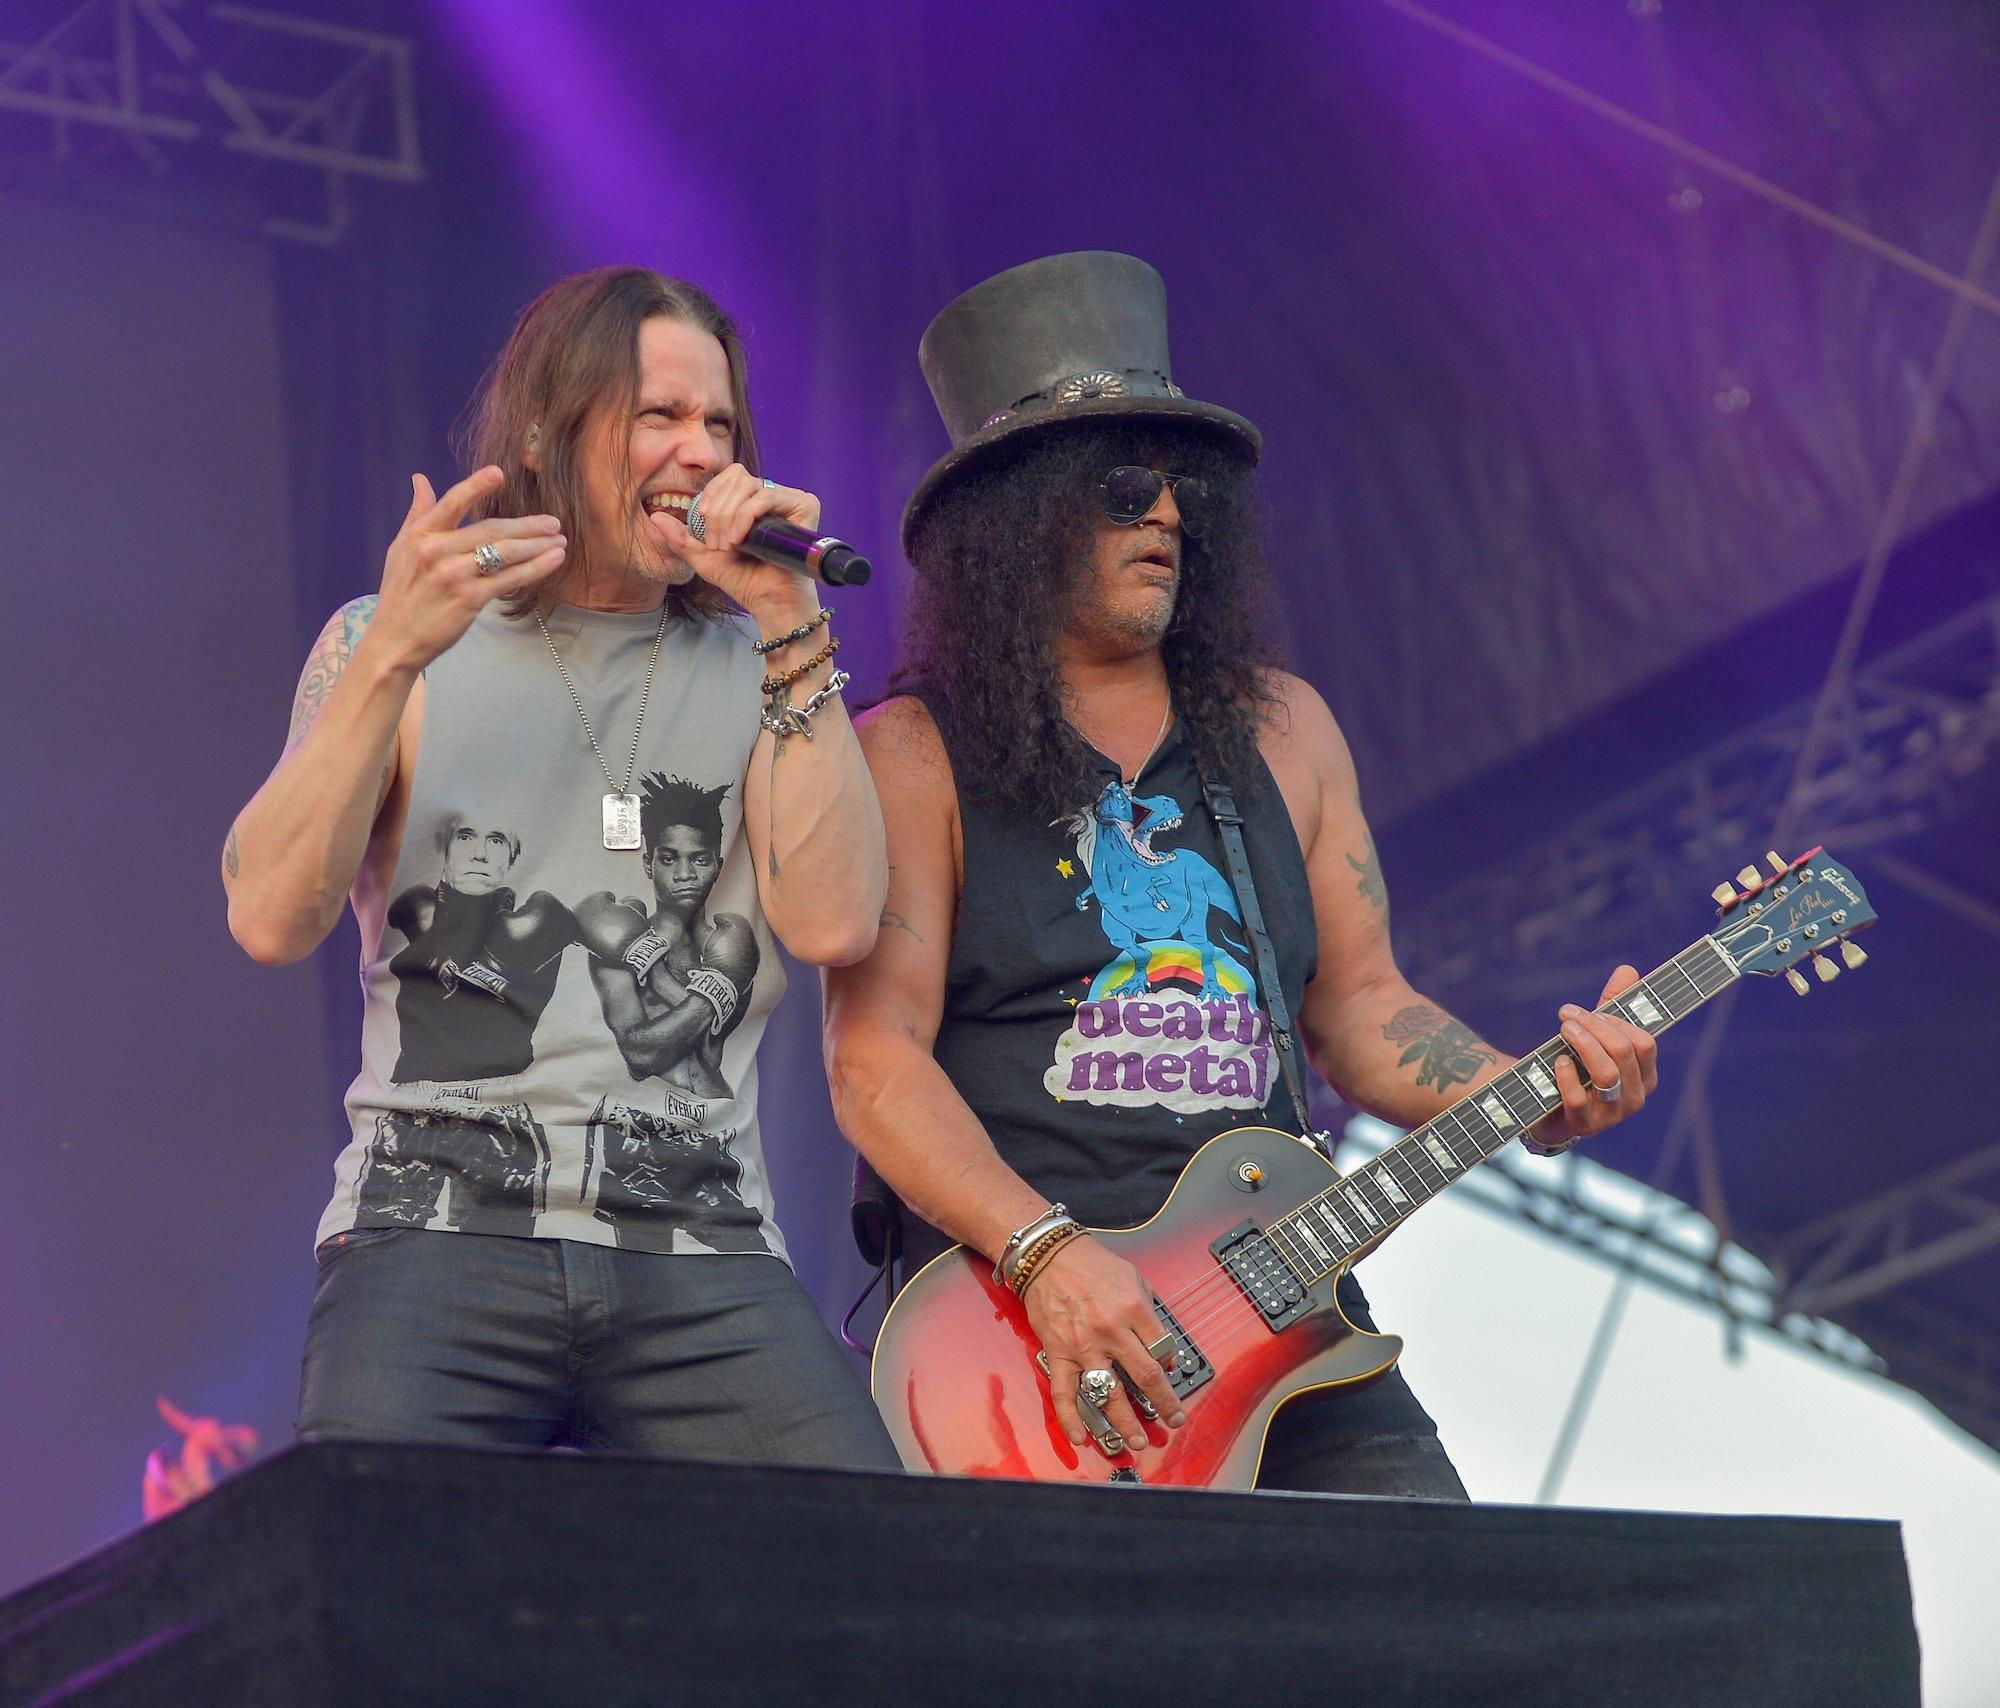 SLASH Featuring Myles Kennedy And The Conspirators Live at Lollapalooza [GALLERY] 8